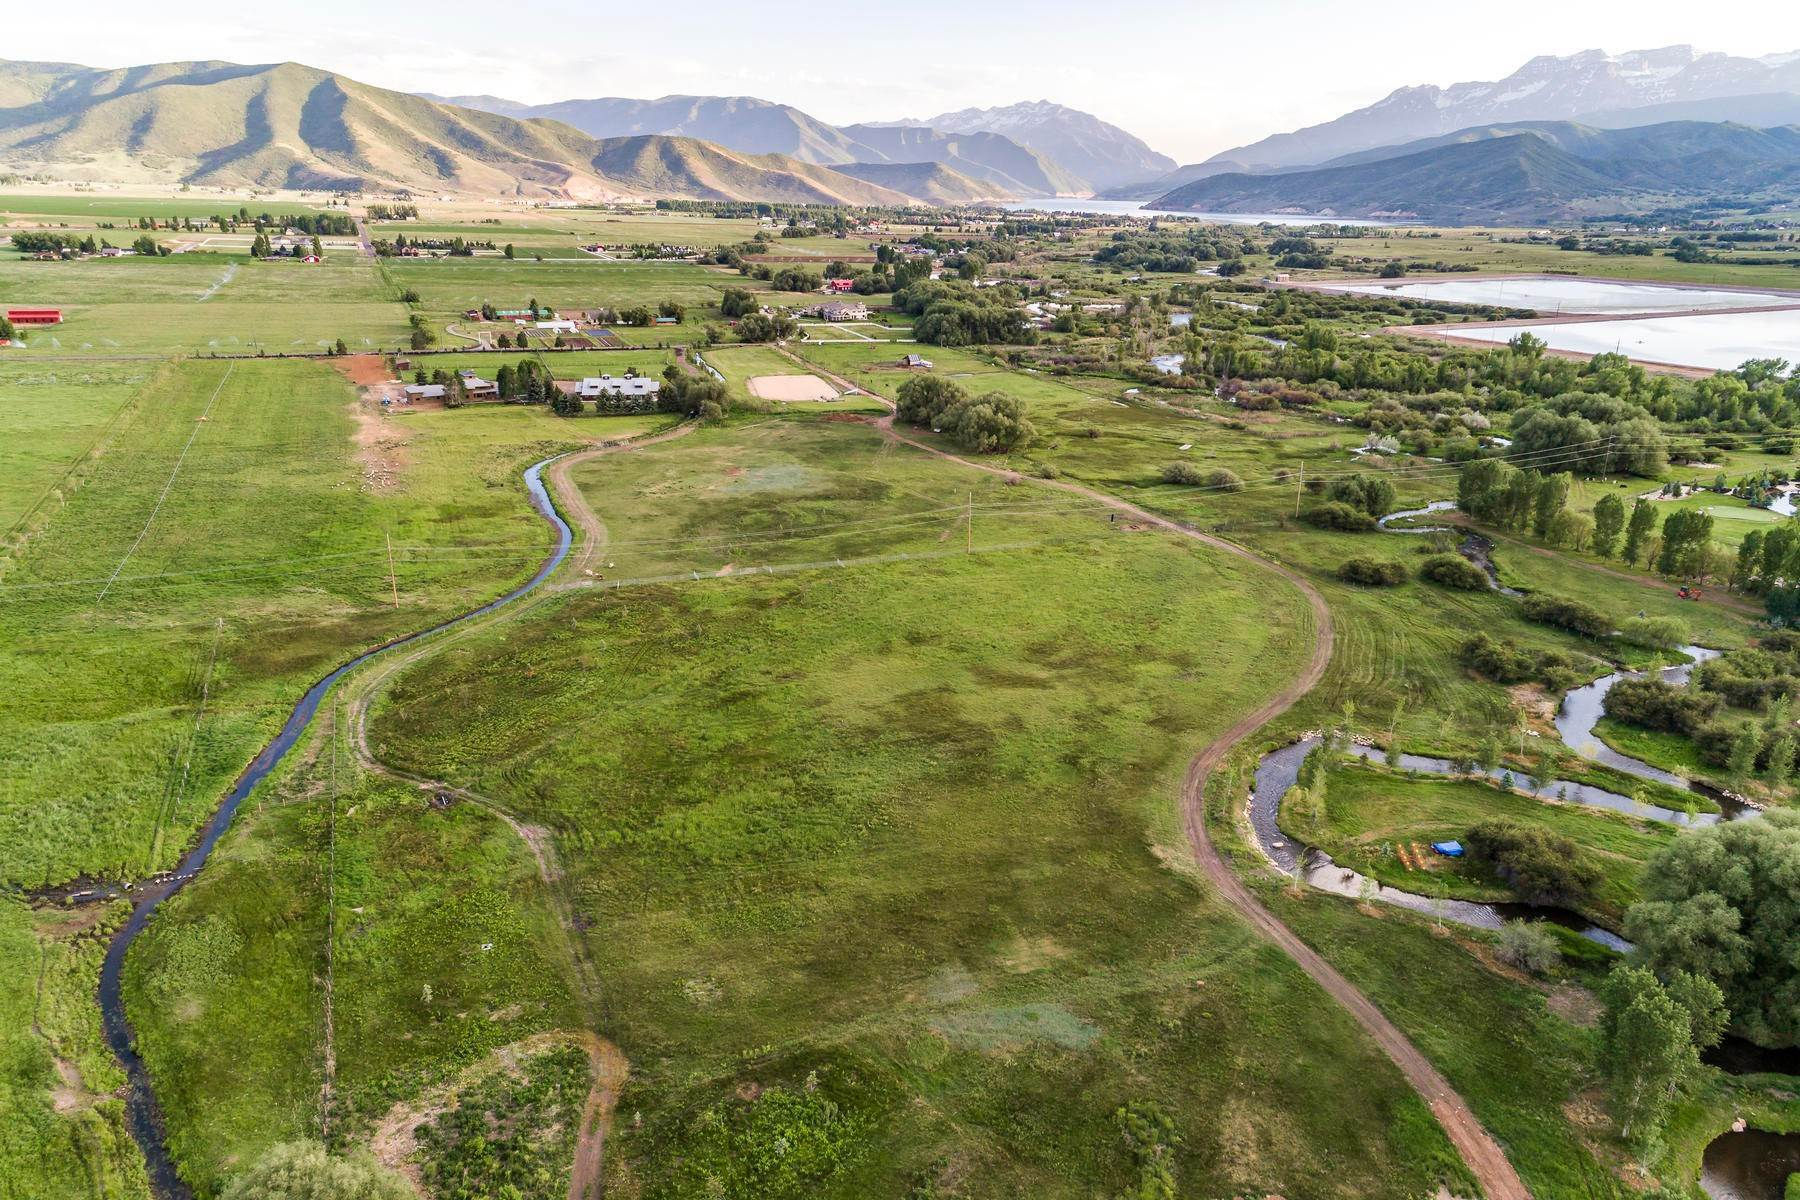 Terreno per Vendita alle ore Stunning Views of Mount Timpanogos on This Beautiful Building Lot 1500 W Midway Lane, #8 Heber, Utah 84032 Stati Uniti